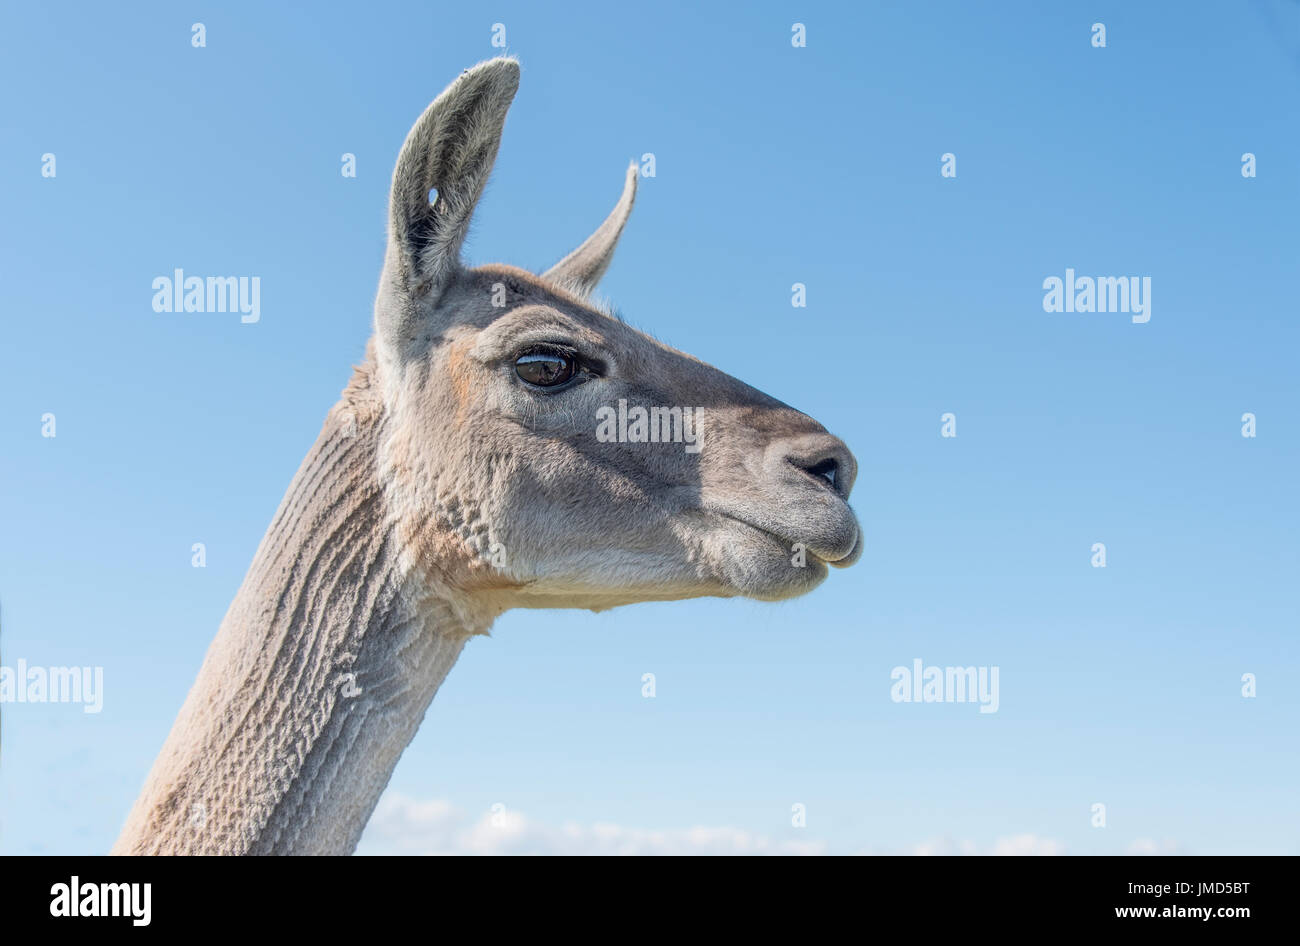 head and neck of a Llama from a low view point Stock Photo